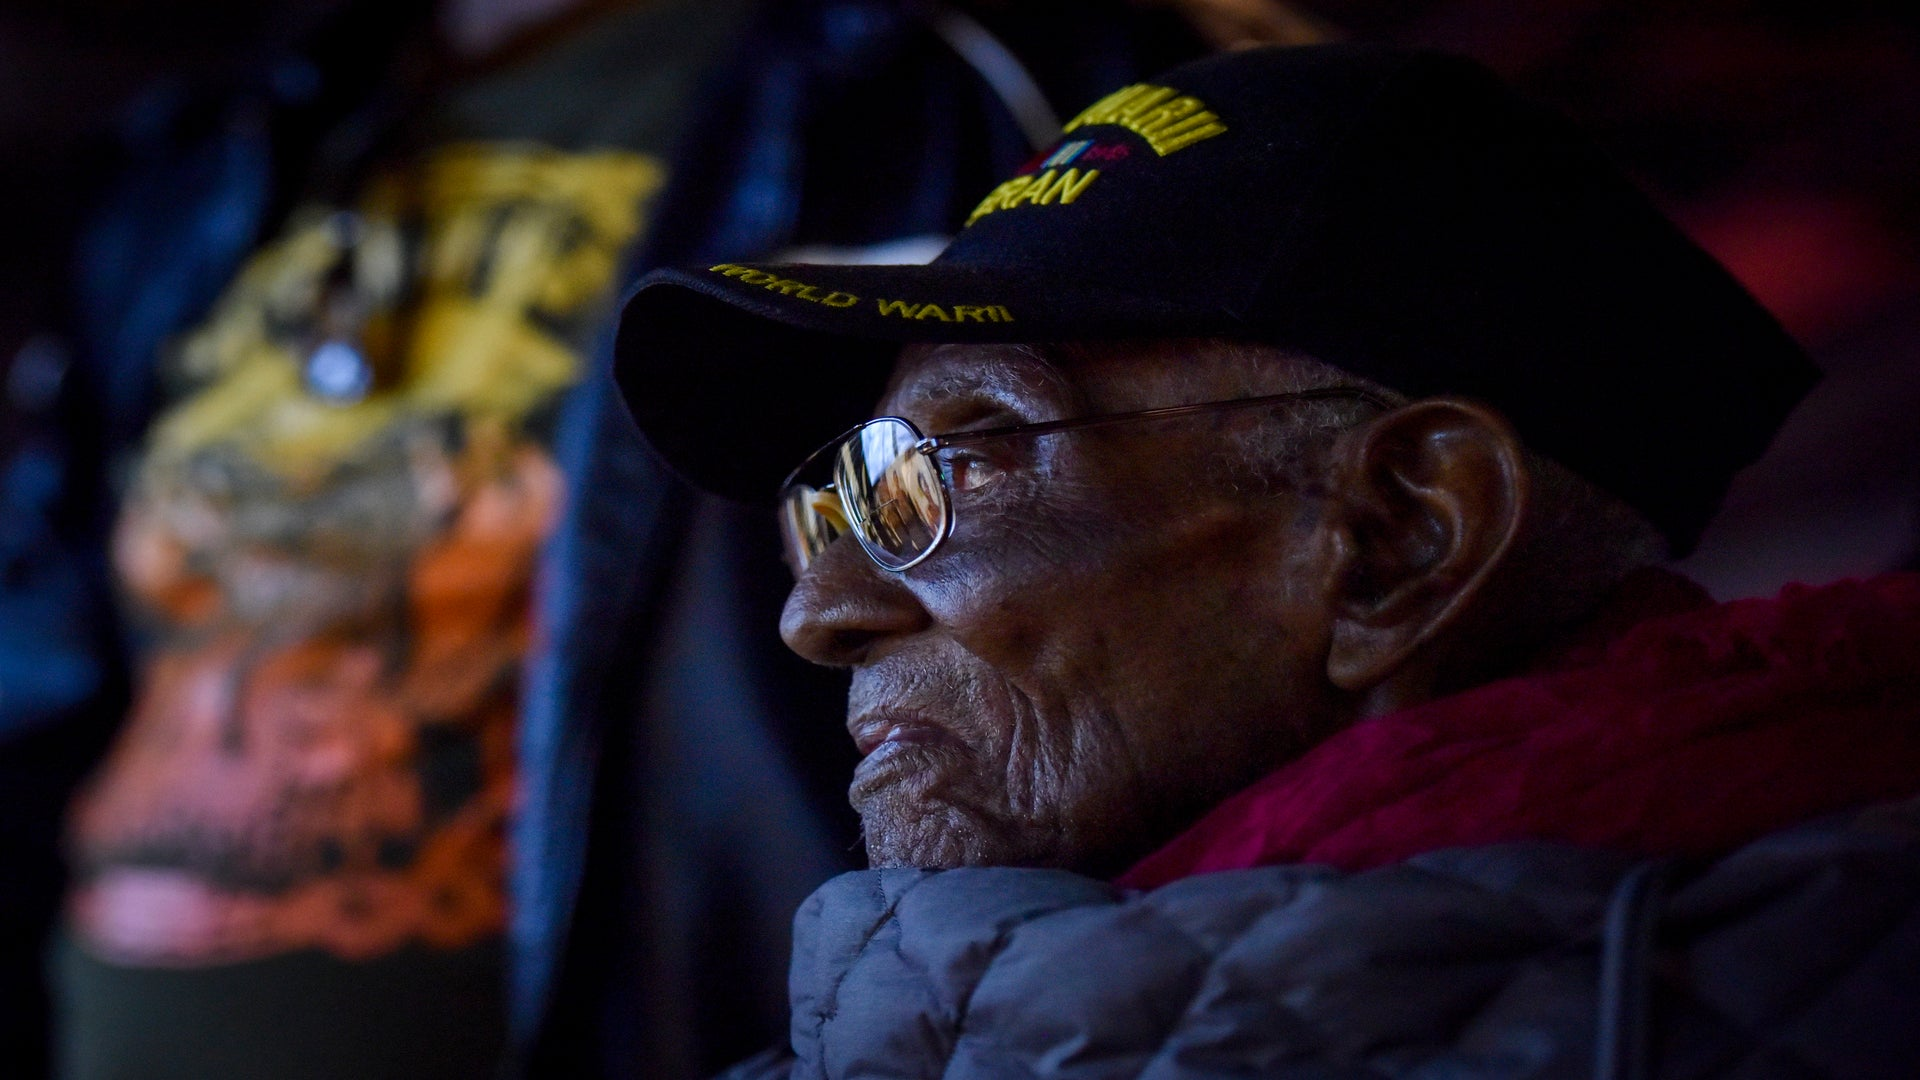 Bank Restores Funds To 112-Year-Old Veteran Whose Money And Identity Was Stolen